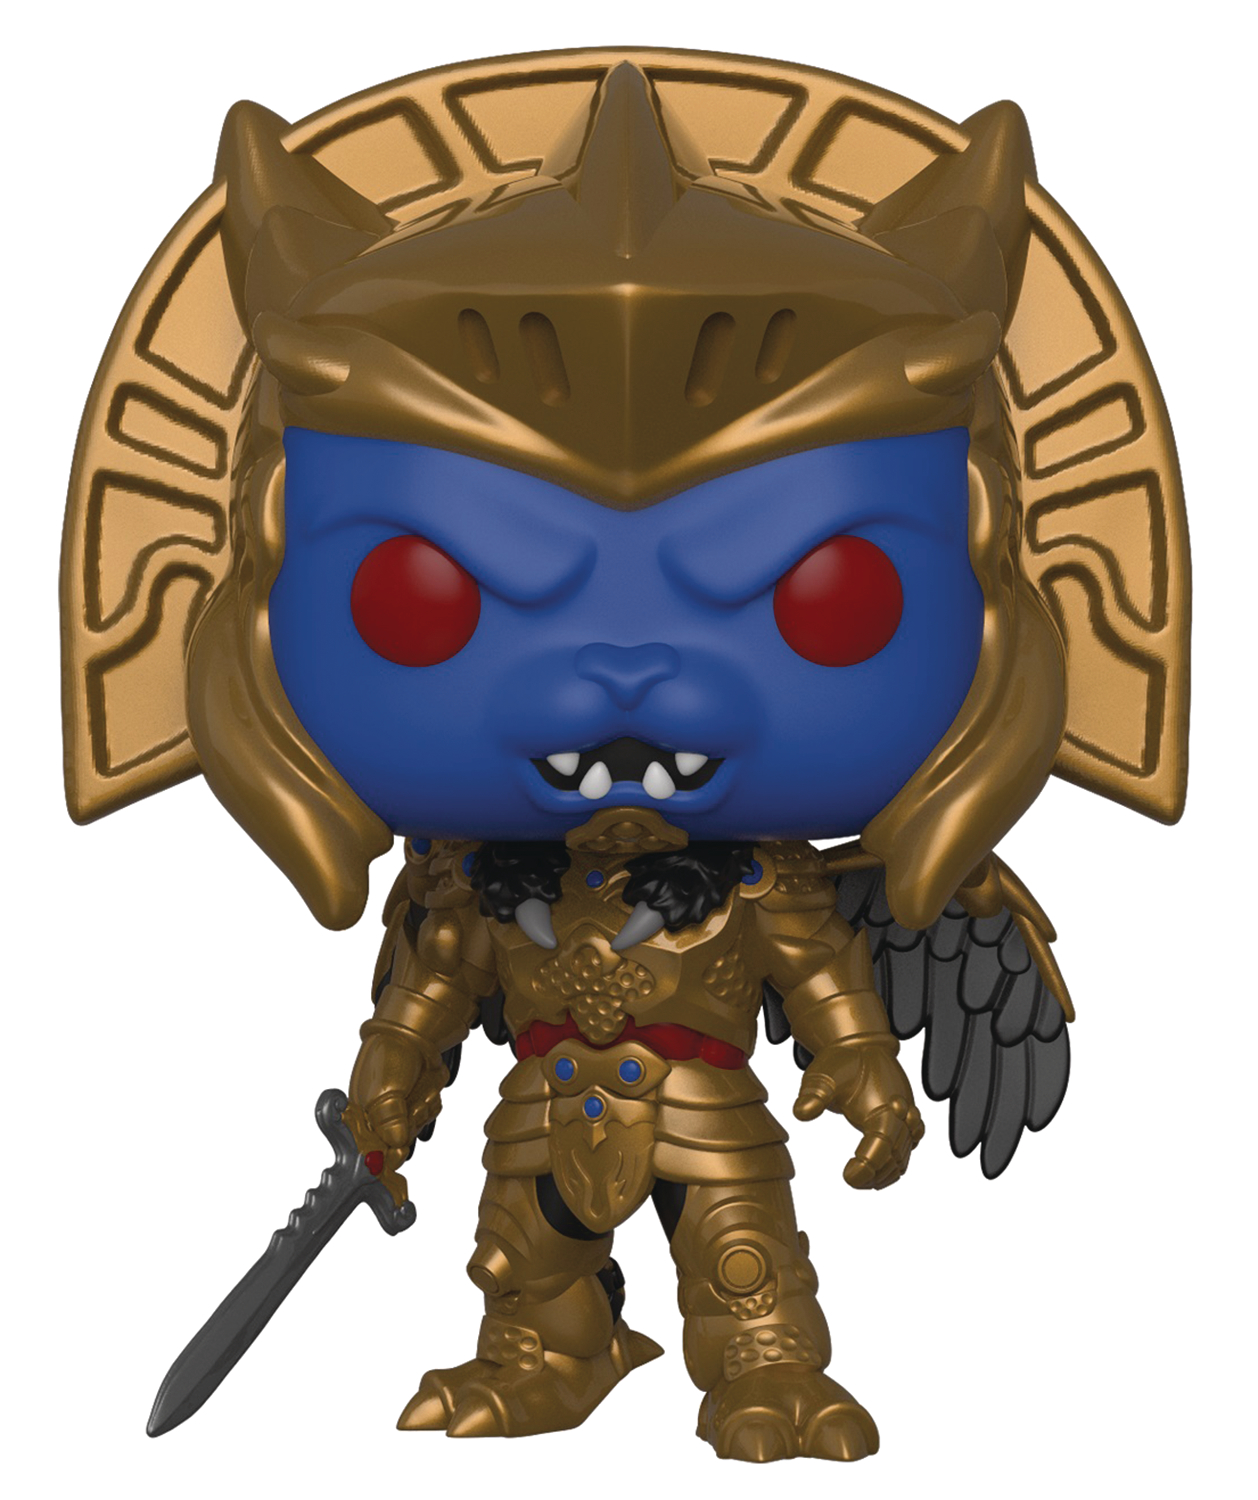 POP TV POWER RANGERS S7 GOLDAR VINYL FIG